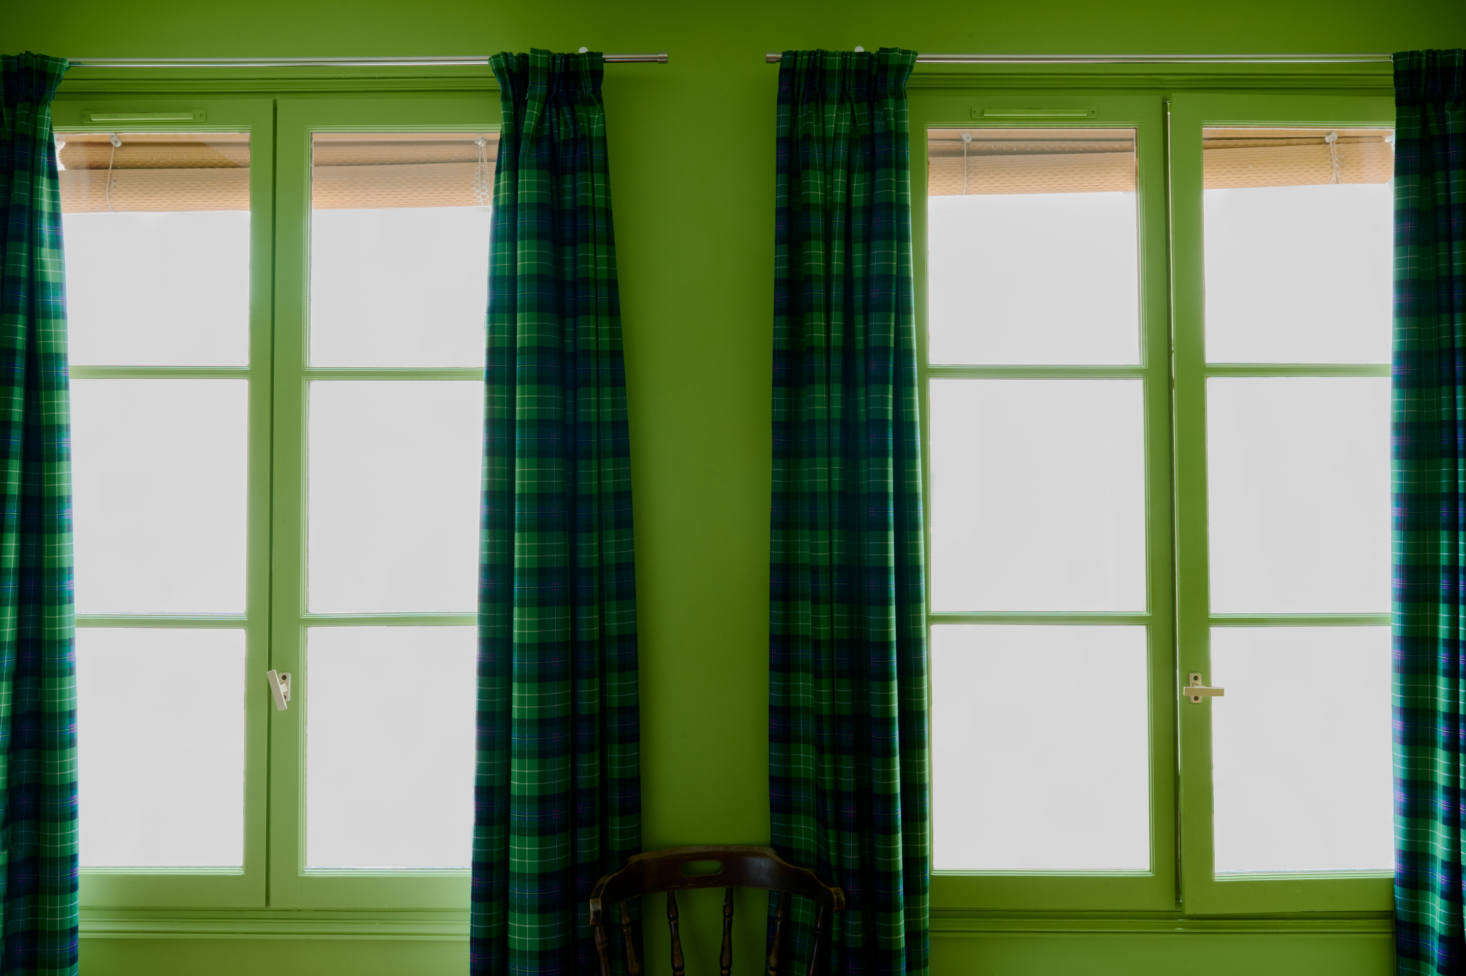 The Pinch-Pleat Tartan Curtains were sourced readymade from the Scotland Shop: this pattern, fittingly, is the All Ireland Blue tartan.